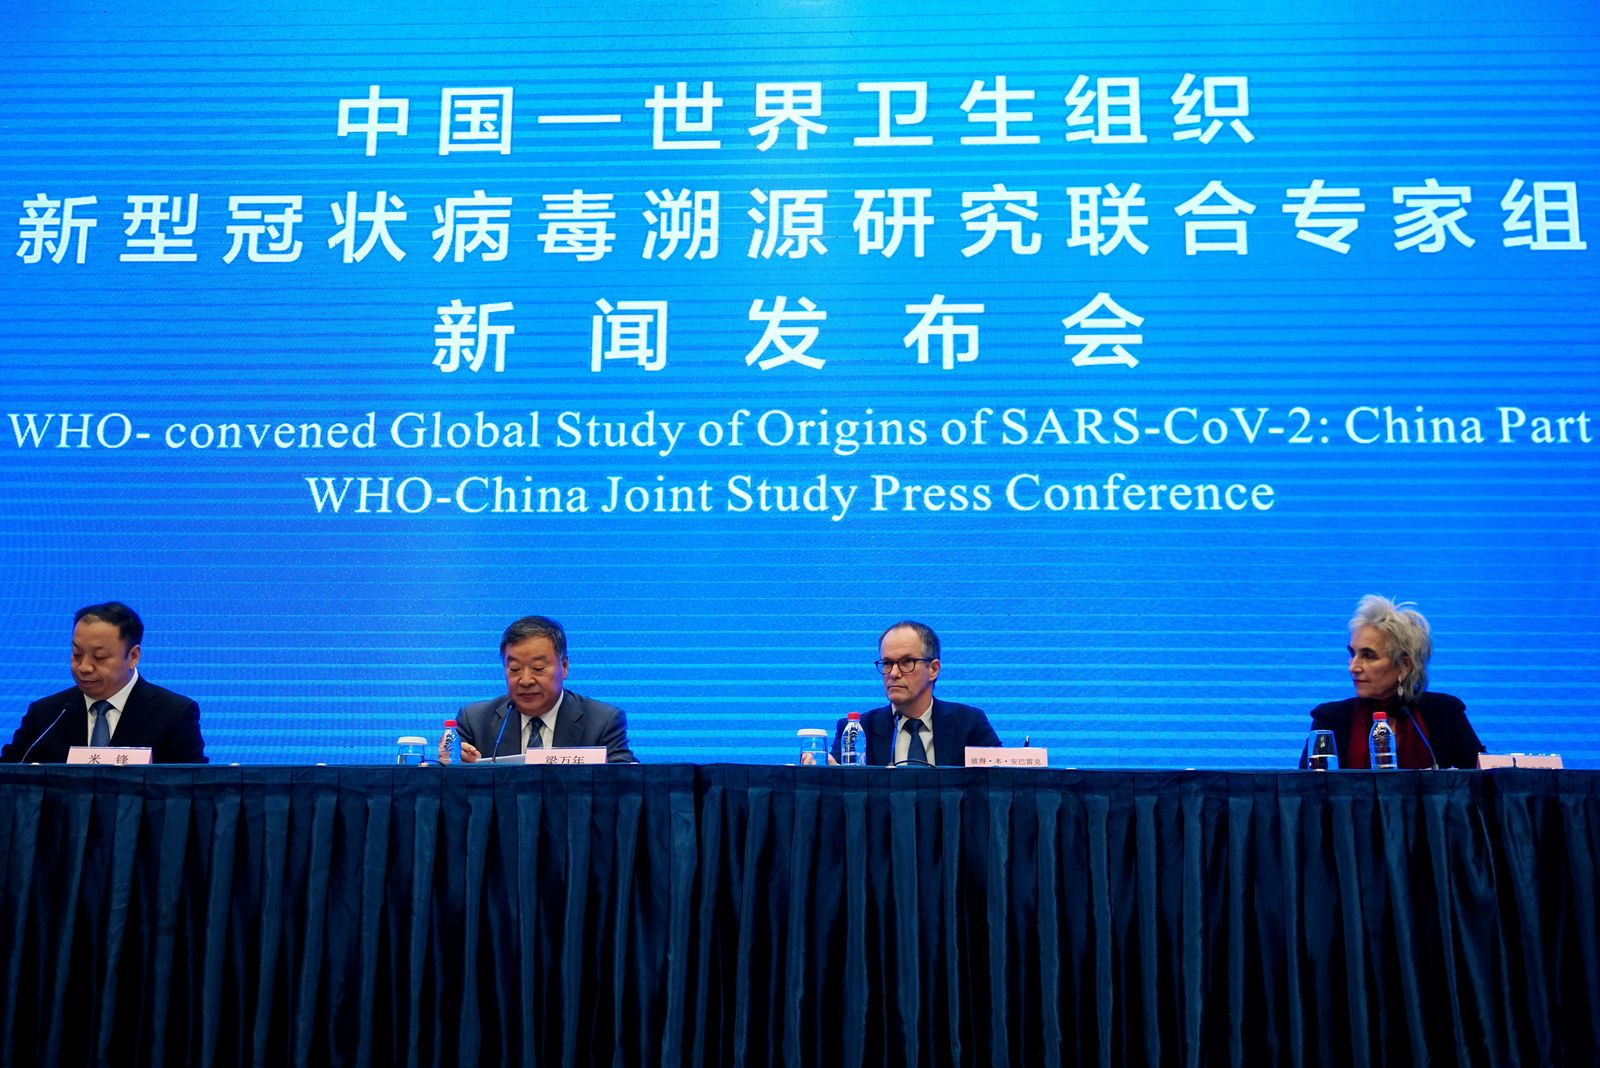 WHO team at a news conference in Wuhan